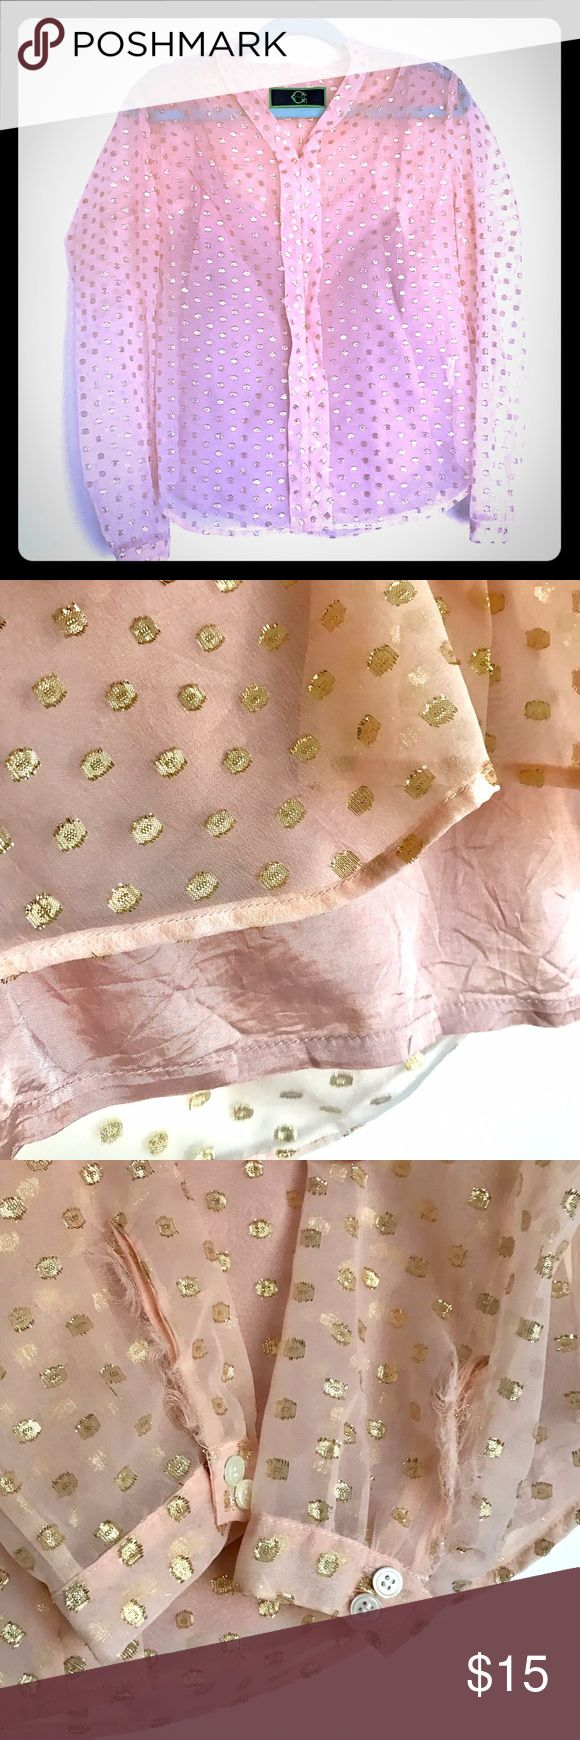 C Wonder sheer pink blouse with gold polka dots 💕 C Wonder sheer pink blouse with removable silky tank top underneath. Fraying happening in cuffs as shown, but can be worn with rolled sleeves to cover (see pic). C Wonder Tops Blouses